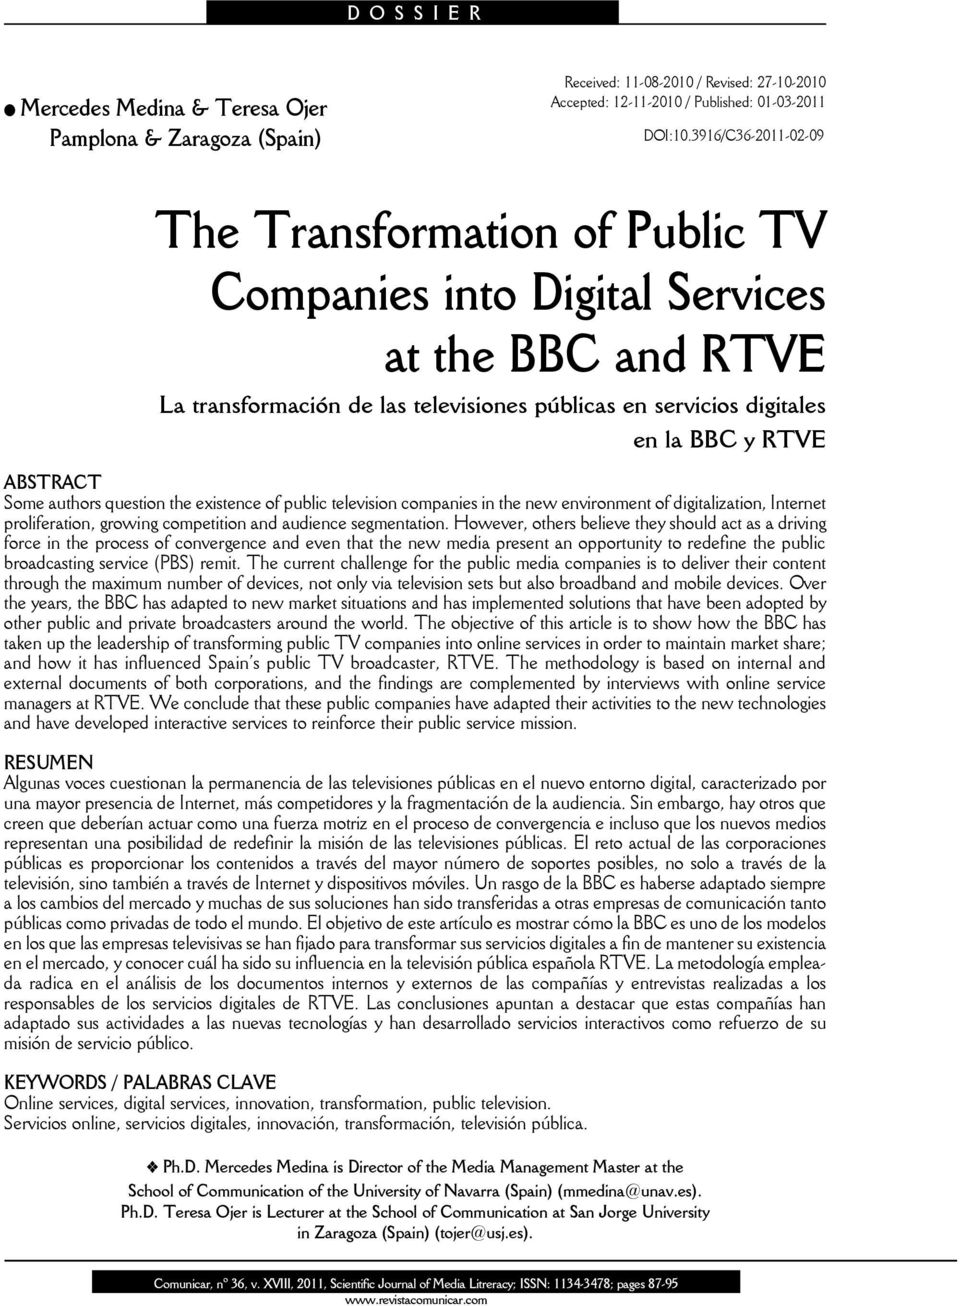 Some authors question the existence of public television companies in the new environment of digitalization, Internet proliferation, growing competition and audience segmentation.